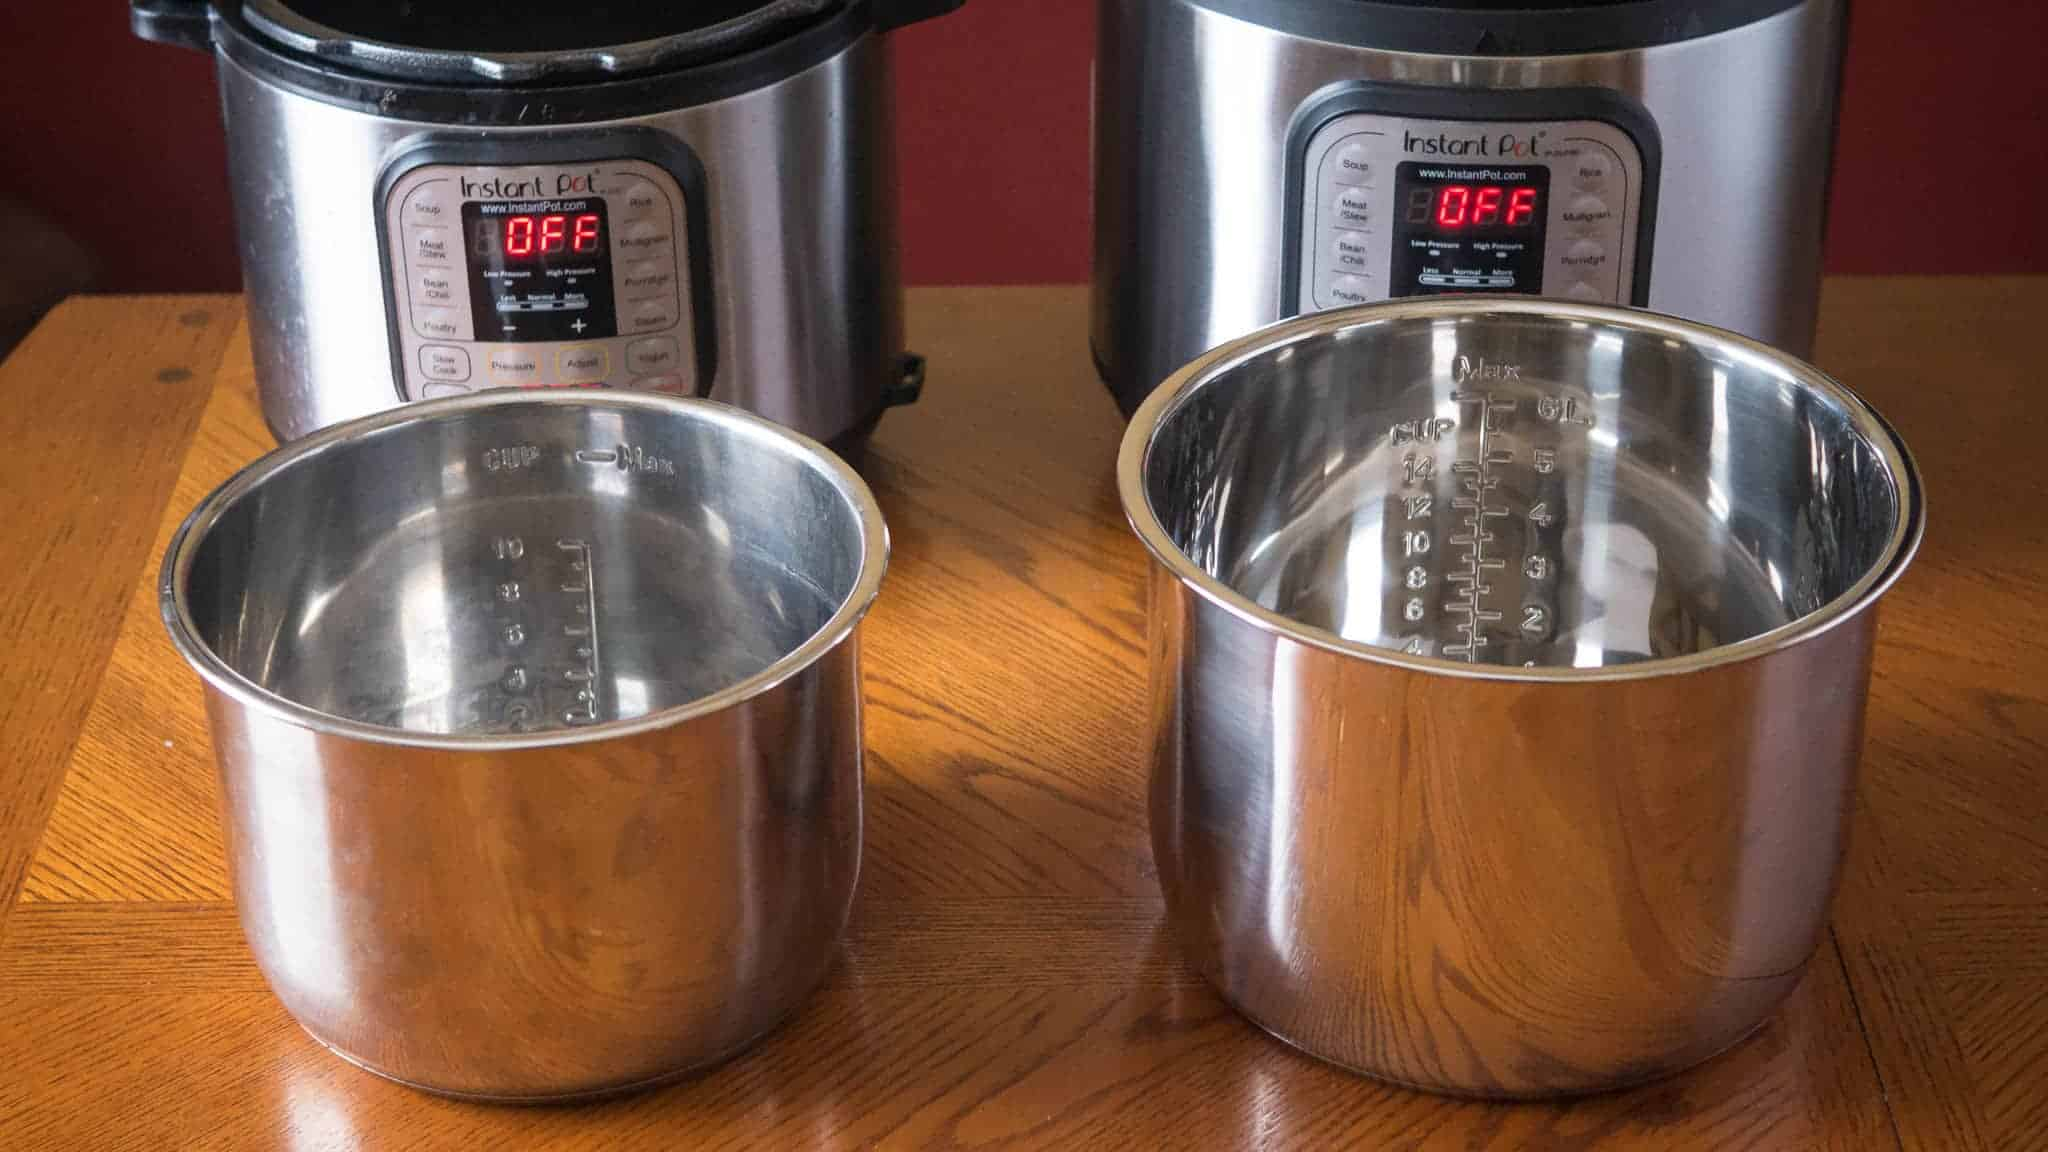 Pressure Cooker 8 Qt First Look at the 8-Quart Instant Pot IP-DUO80 - Dad Cooks ...